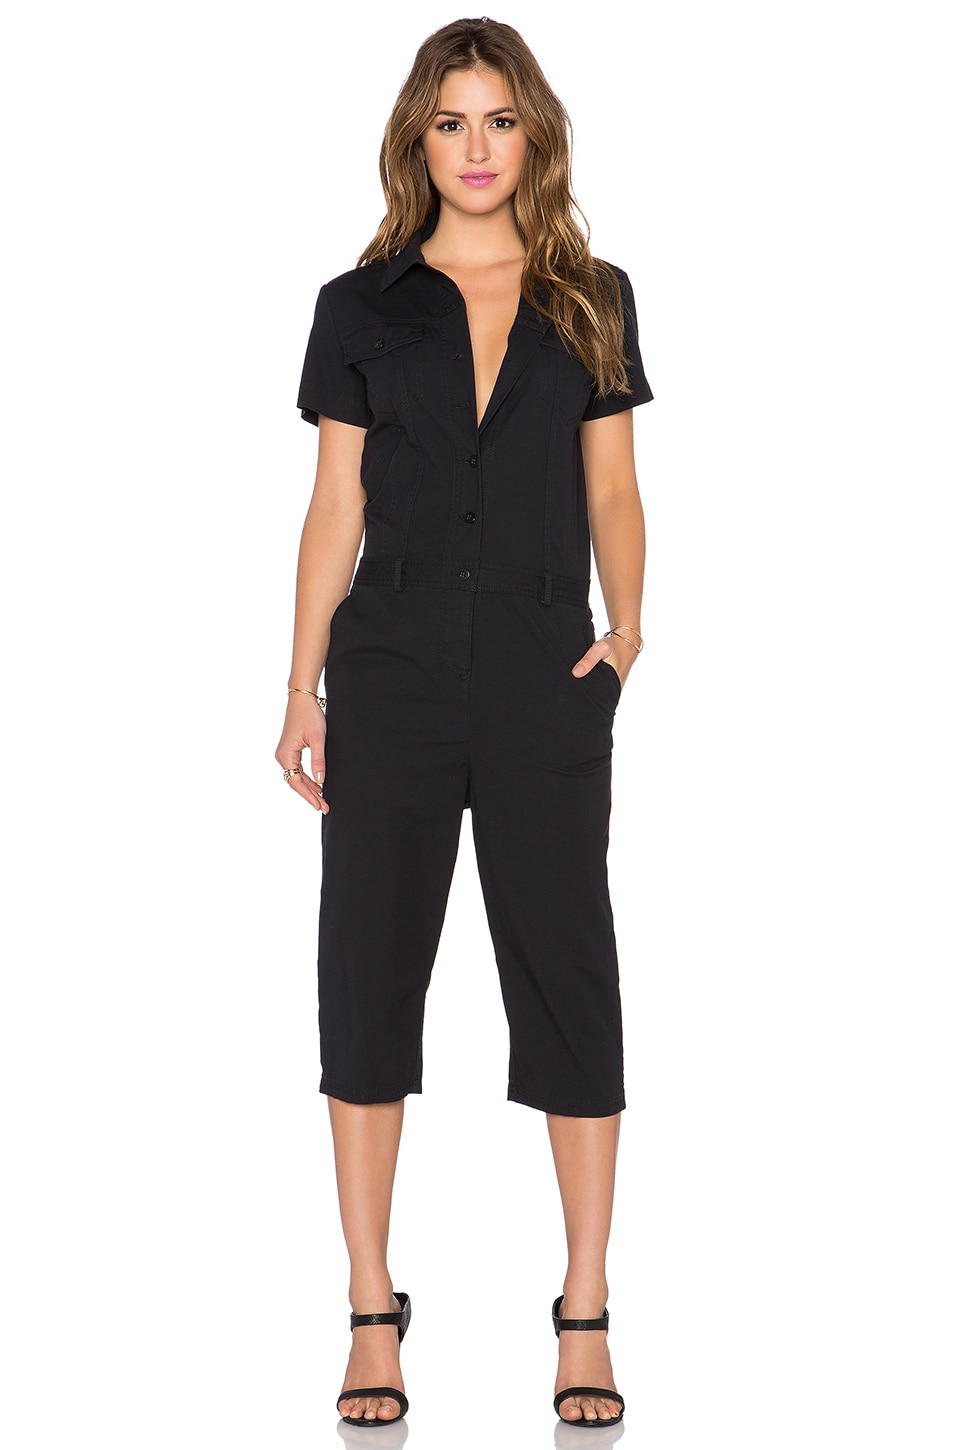 Marc by Marc Jacobs Summer Cotton Jumpsuit in Black | REVOLVE